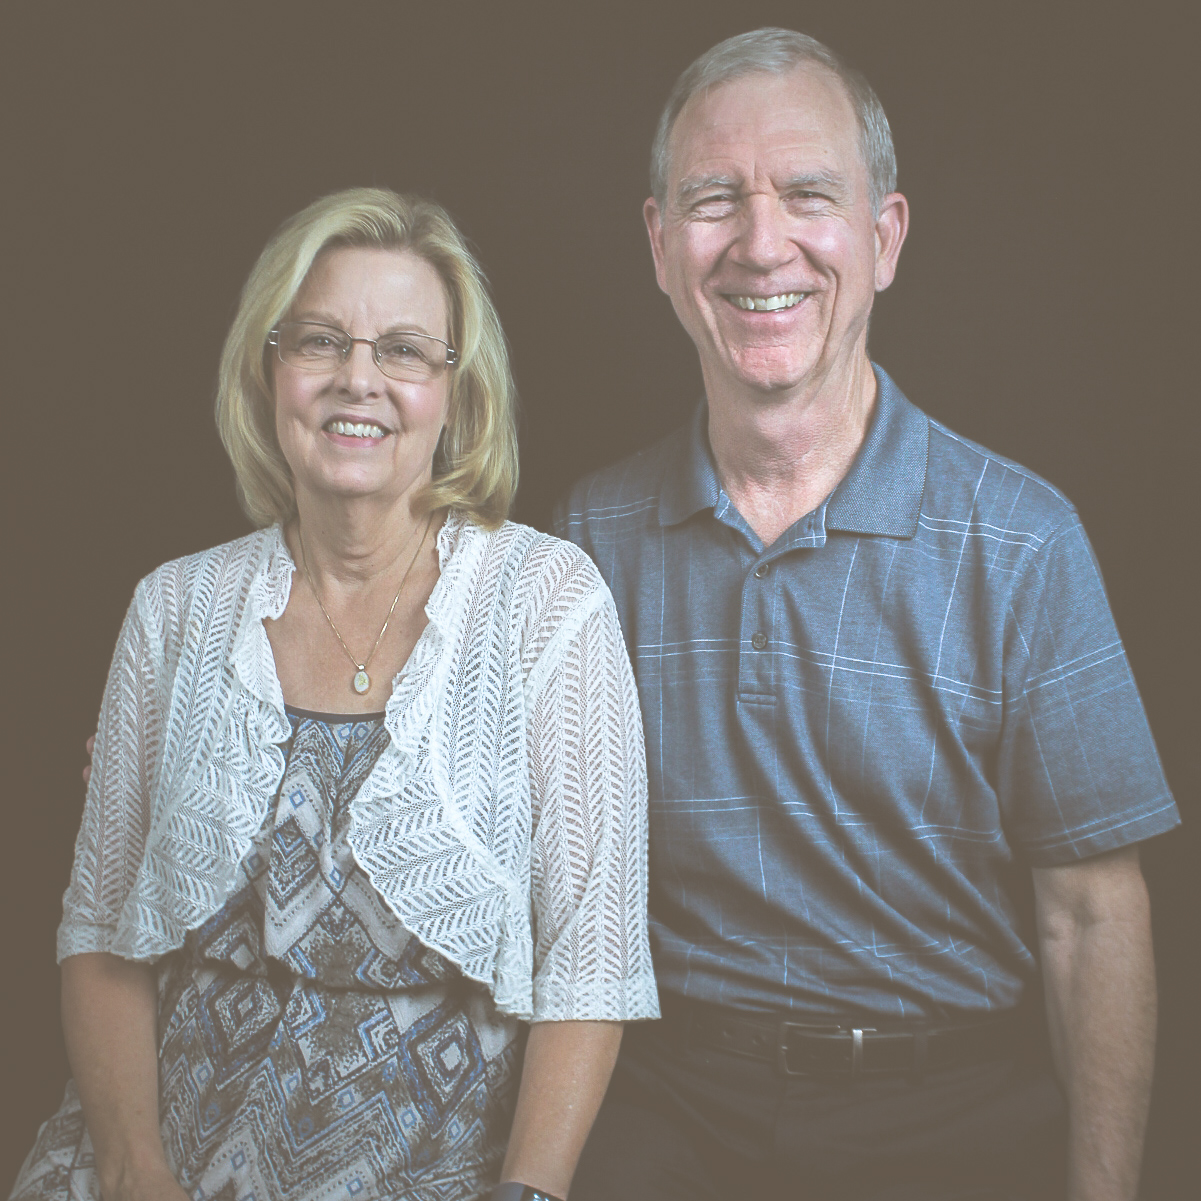 John & Sharlyn McHenry - Empty Nesters   7:00-8:45pm  Mixed couples & Individuals  Starts 9/11